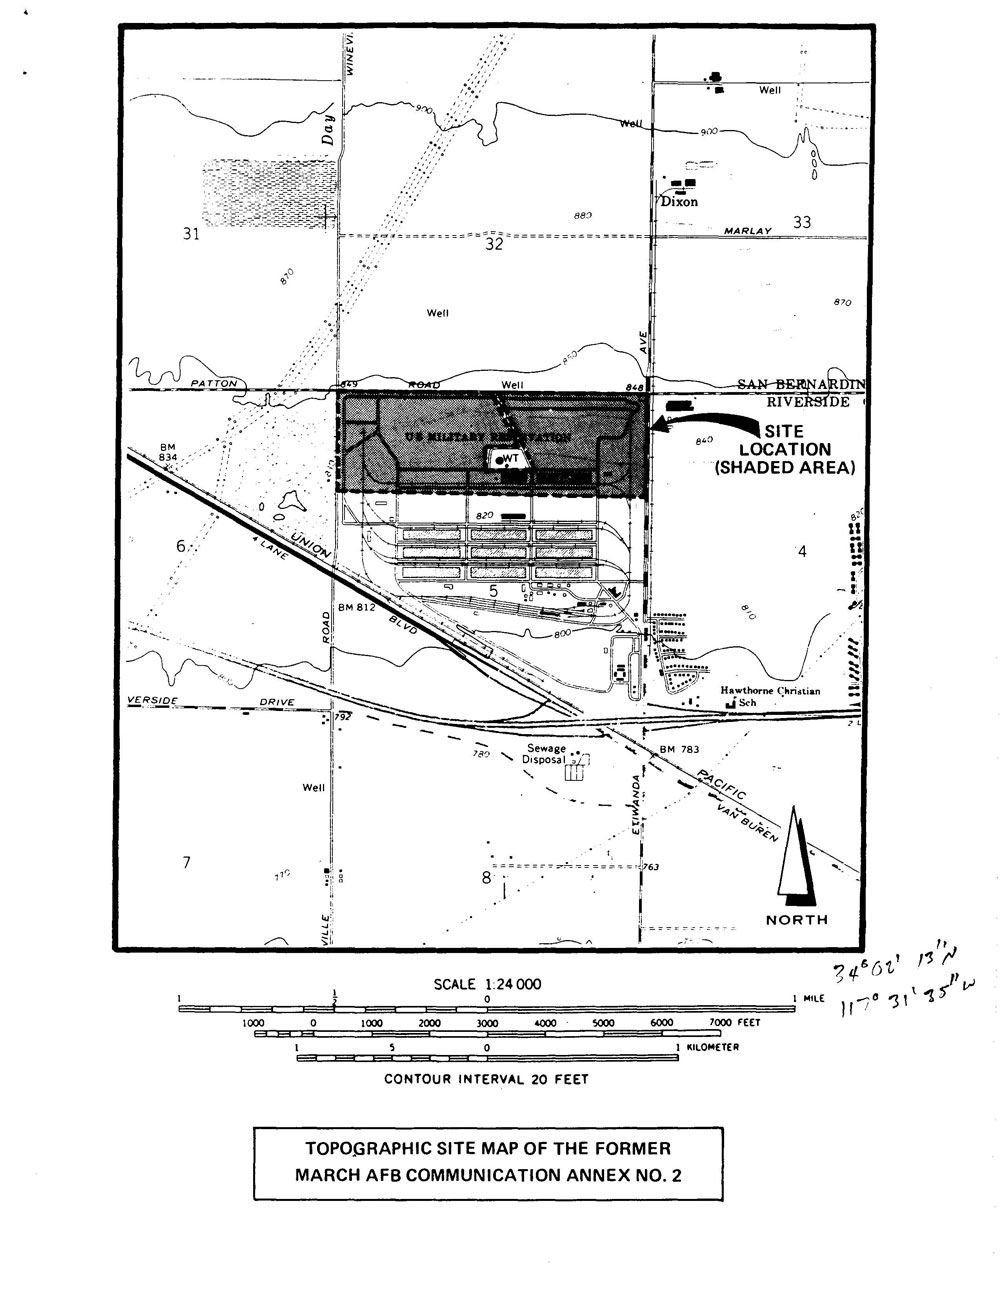 March Air Force Base Communications Annex No 2 Diagram 2jpg The Army And Improvements Remaining On Site Are Mostly Asphalt Roads Across